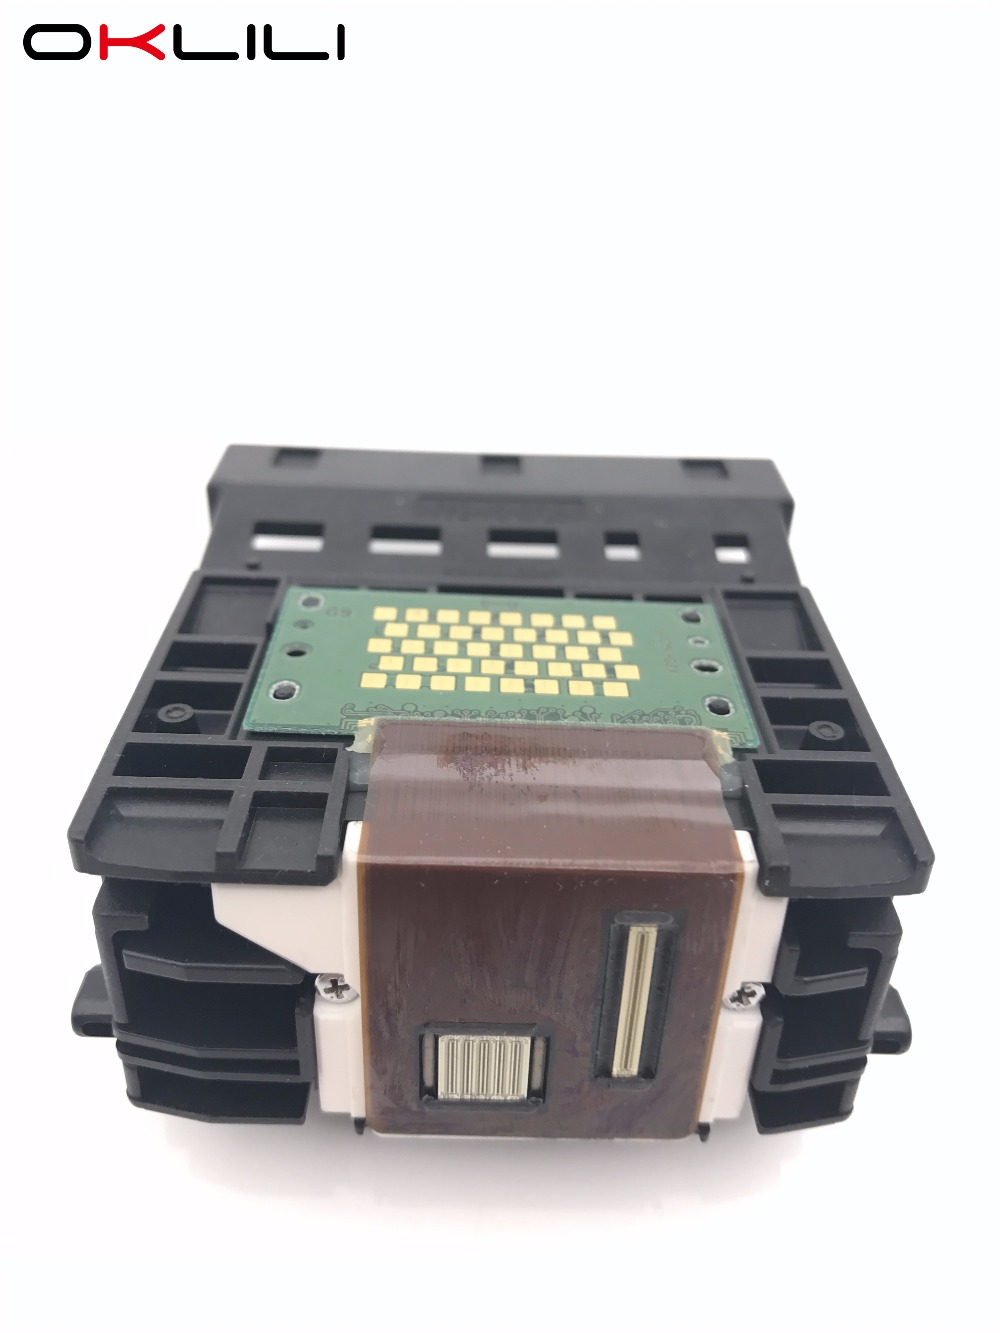 OKLILI ORIGINAL QY6-0045 QY6-0045-000 Printhead Print Head Printer Head for Canon i550 PIXUS 550i qy6 0076 printhead print head printer head for canon pixus 9900i i9900 i9950 ip8600 ip8500 ip9910 pro9000 mark ii